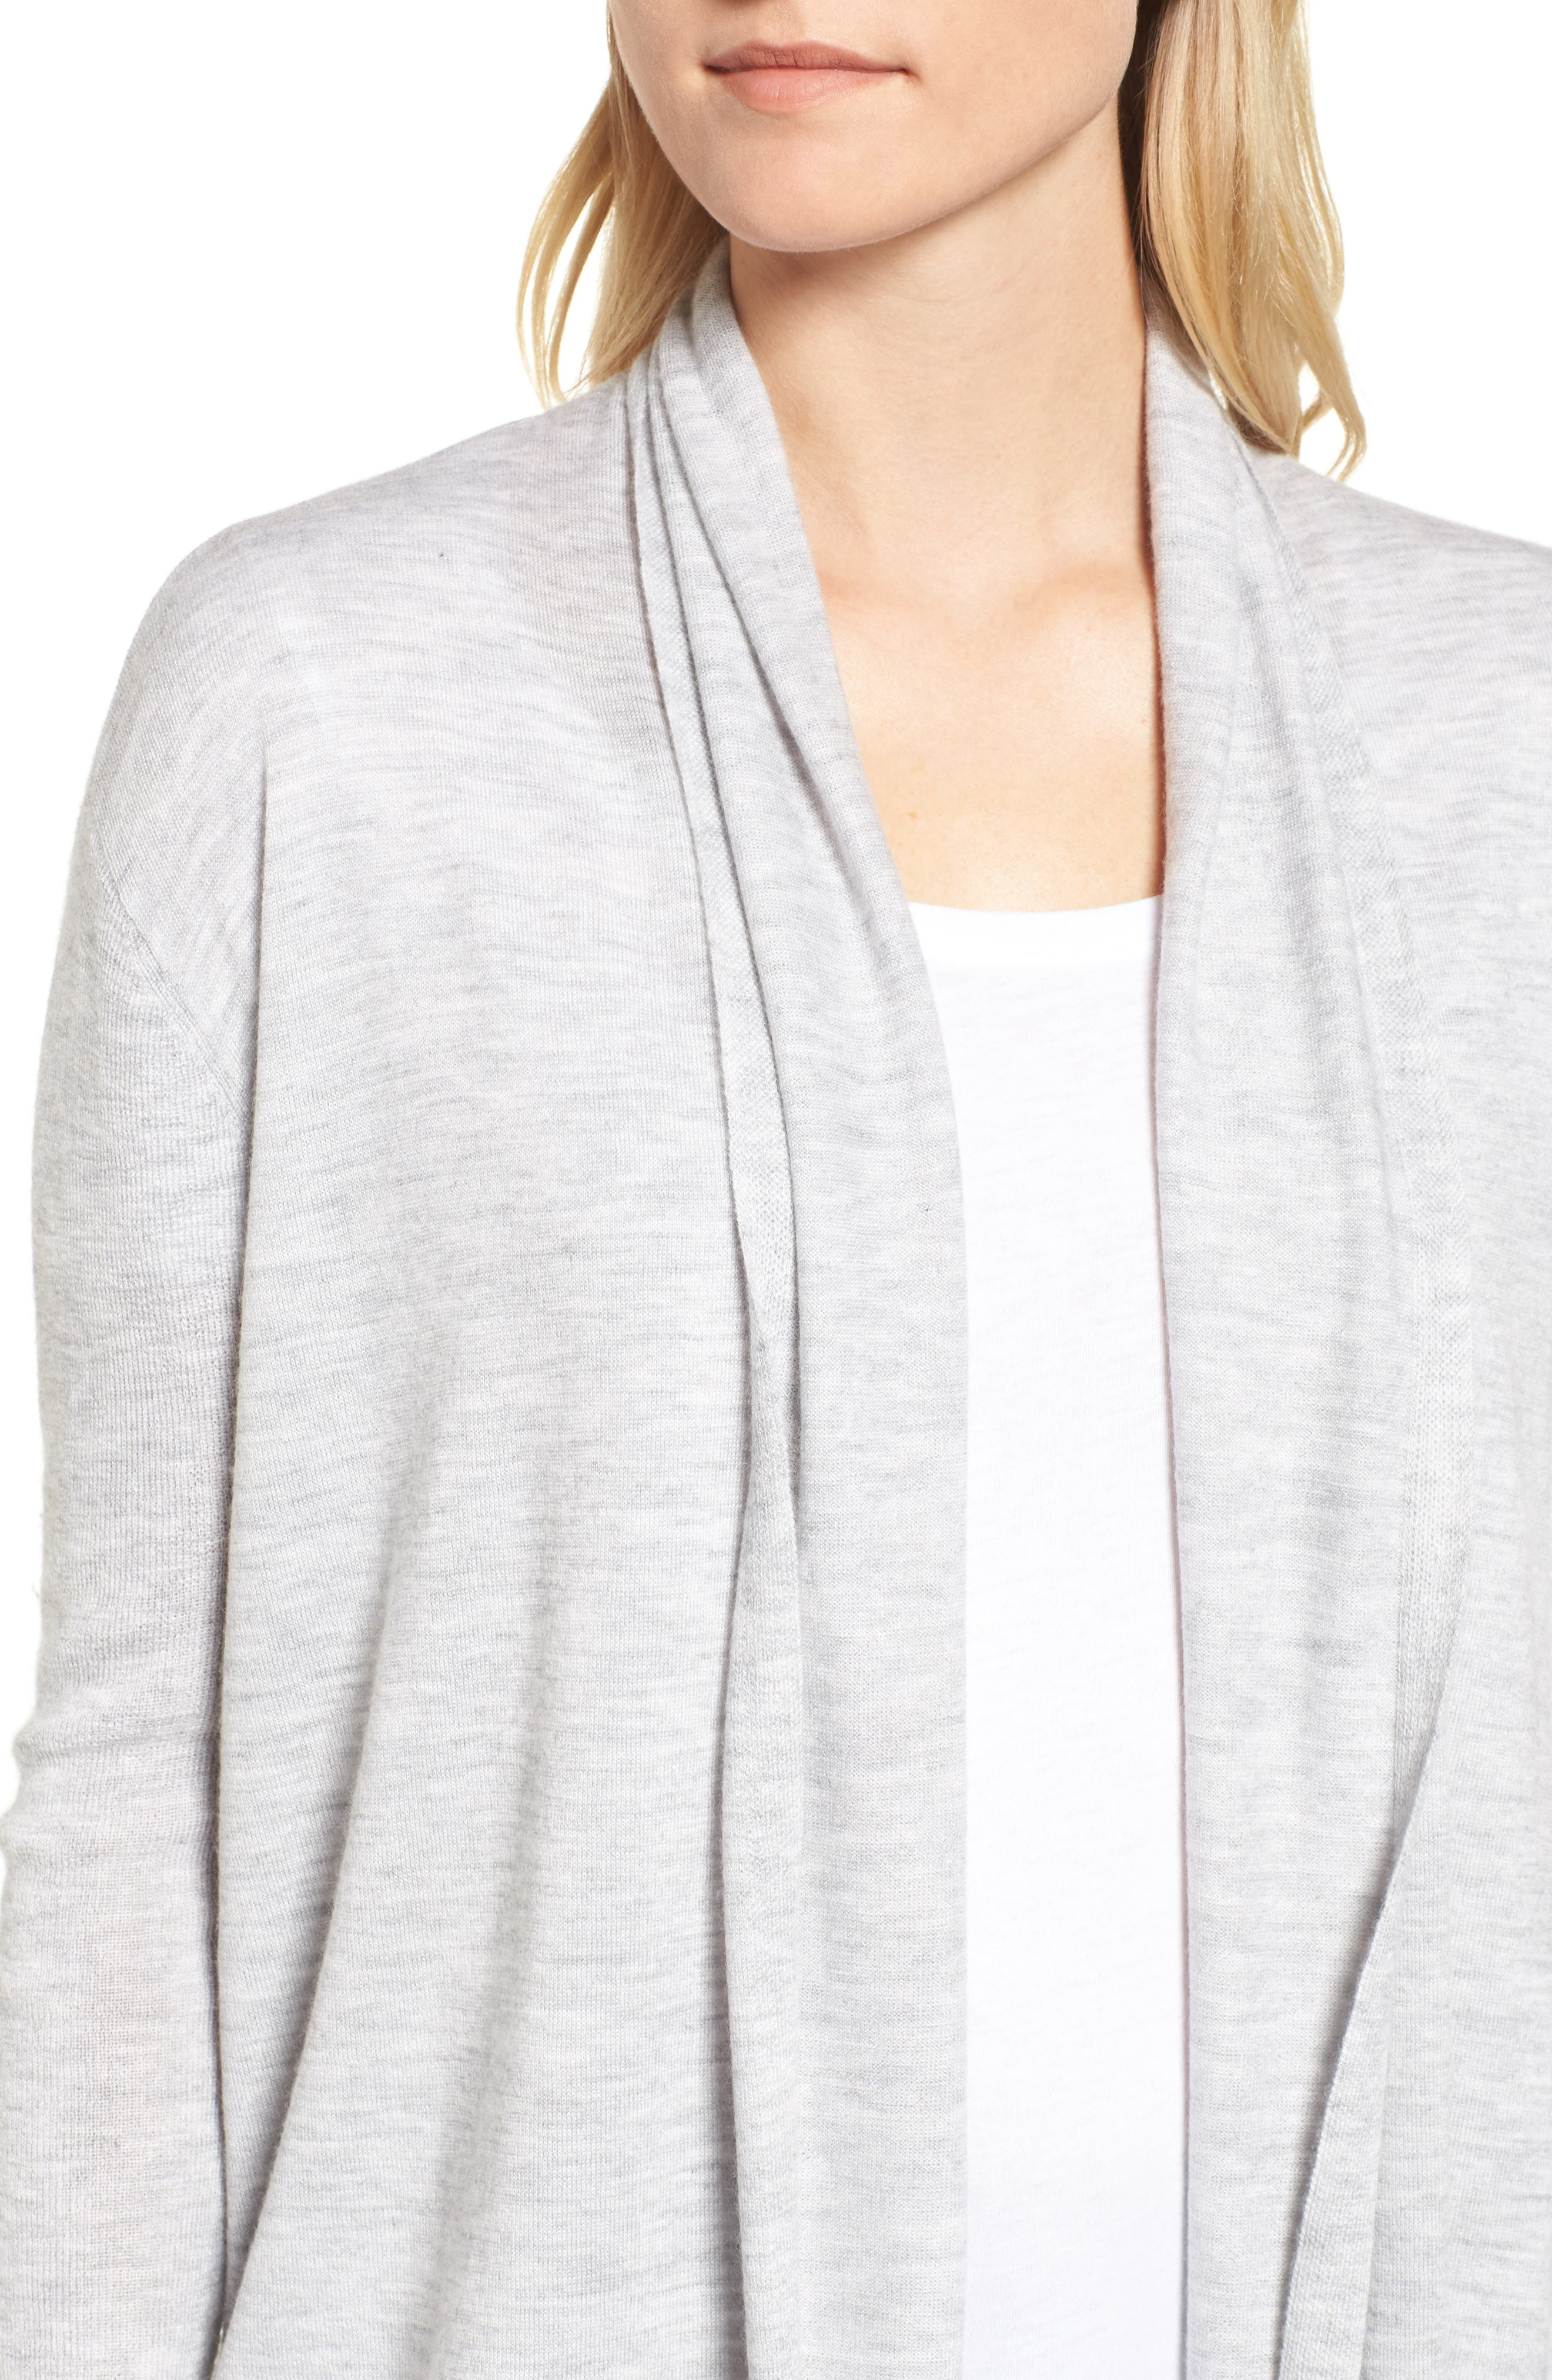 Cashmere Cardigan,                             Alternate thumbnail 4, color,                             Grey Clay Heather